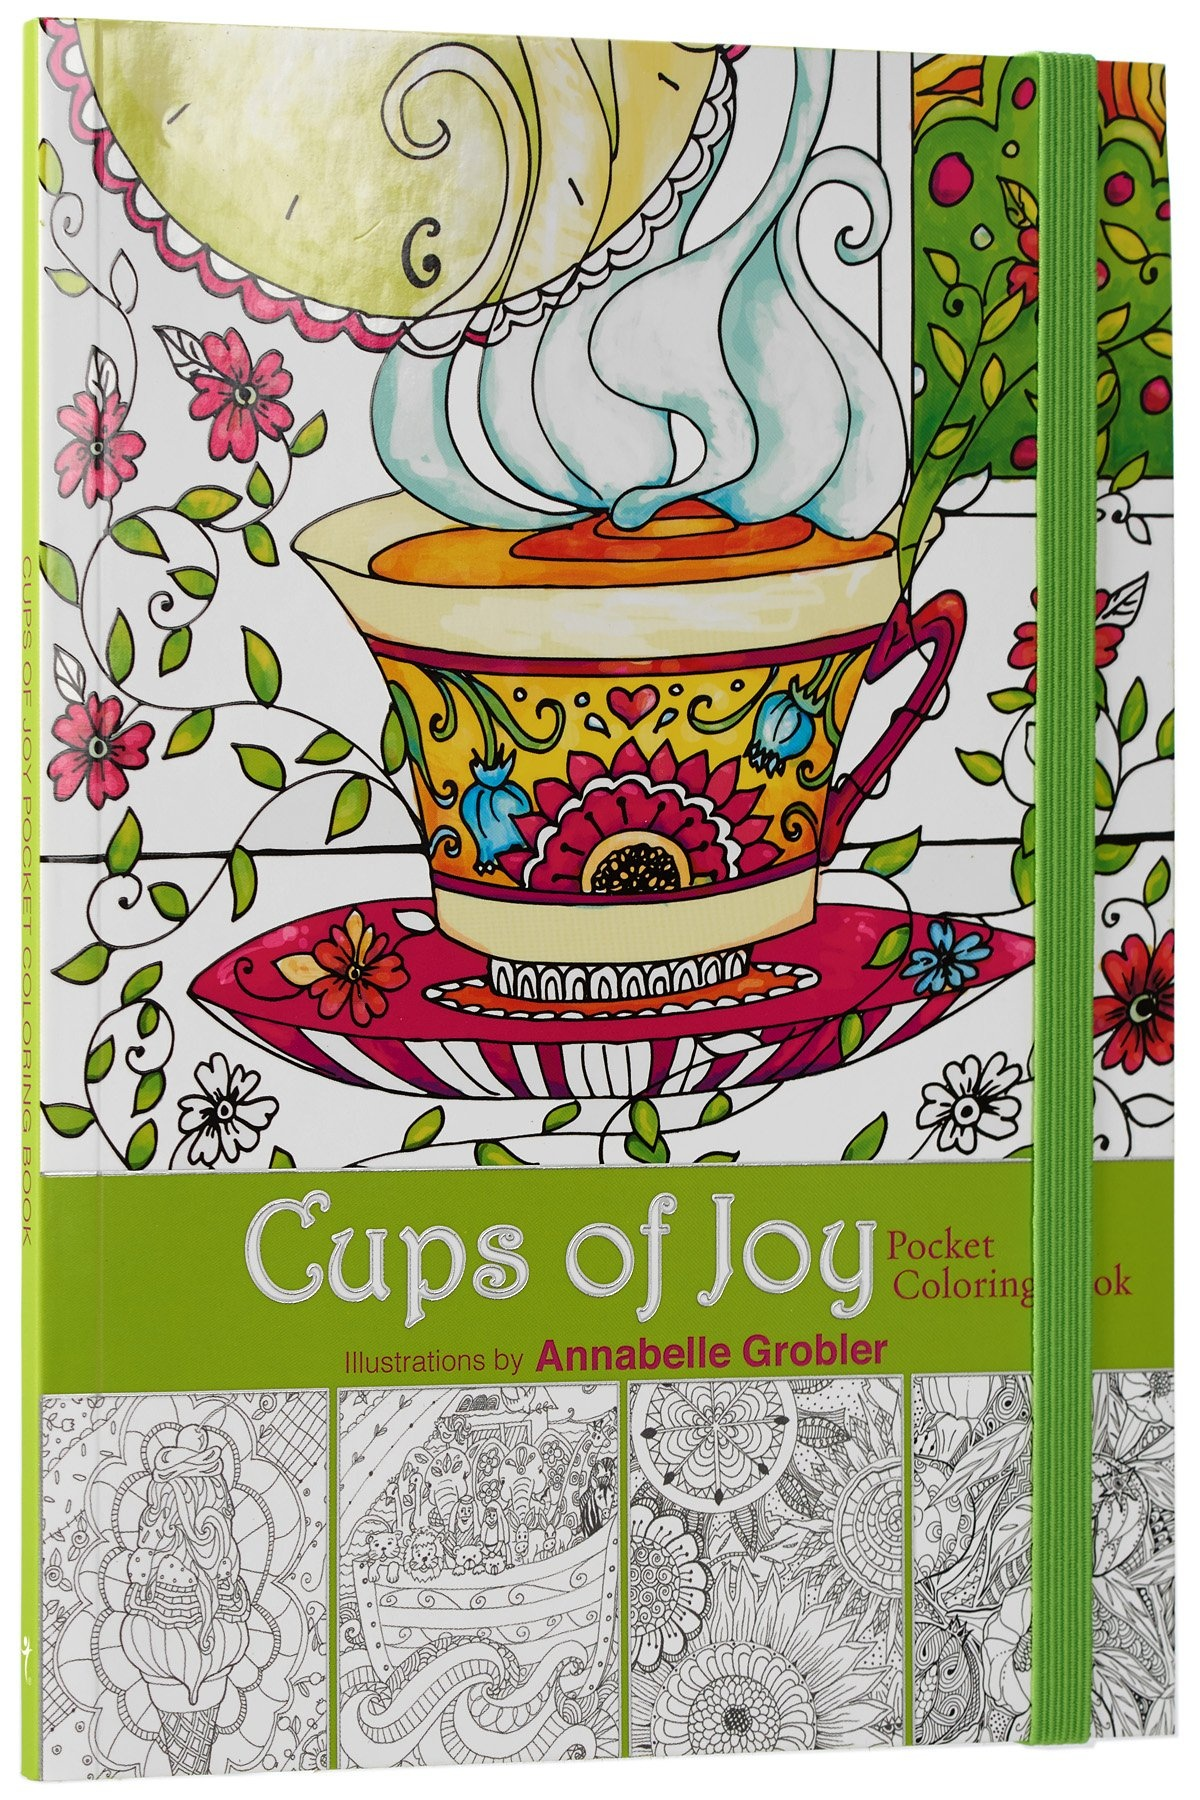 Cups of Joy